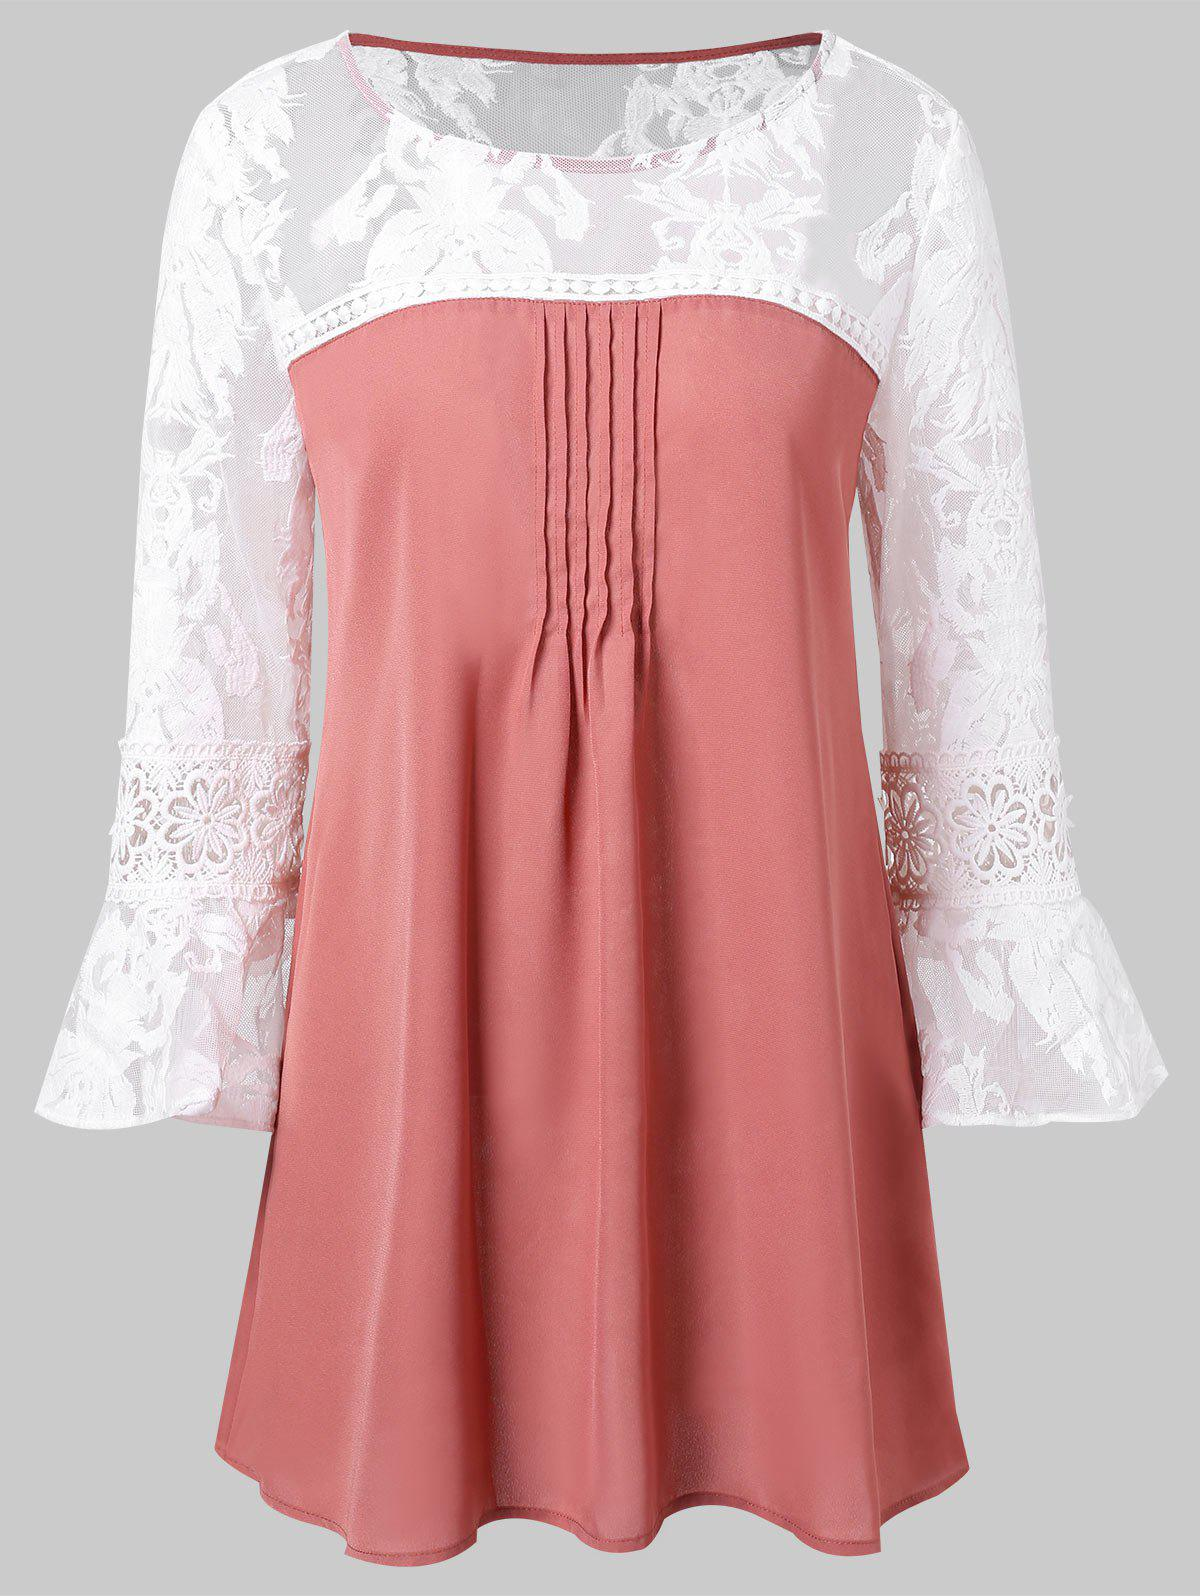 Lace Panel Flare Sleeve Blouse